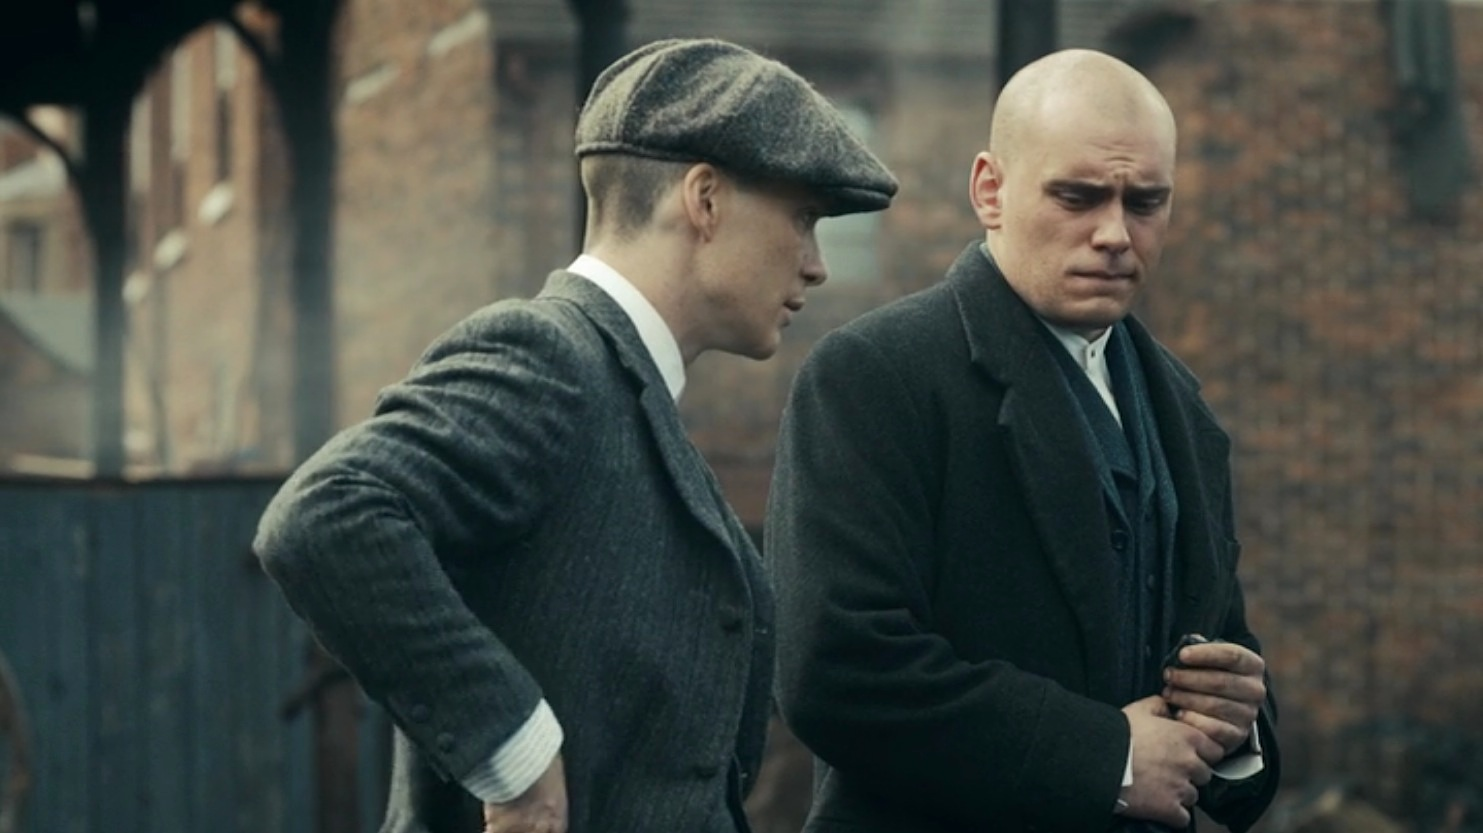 peaky blinders wallpaper quotes